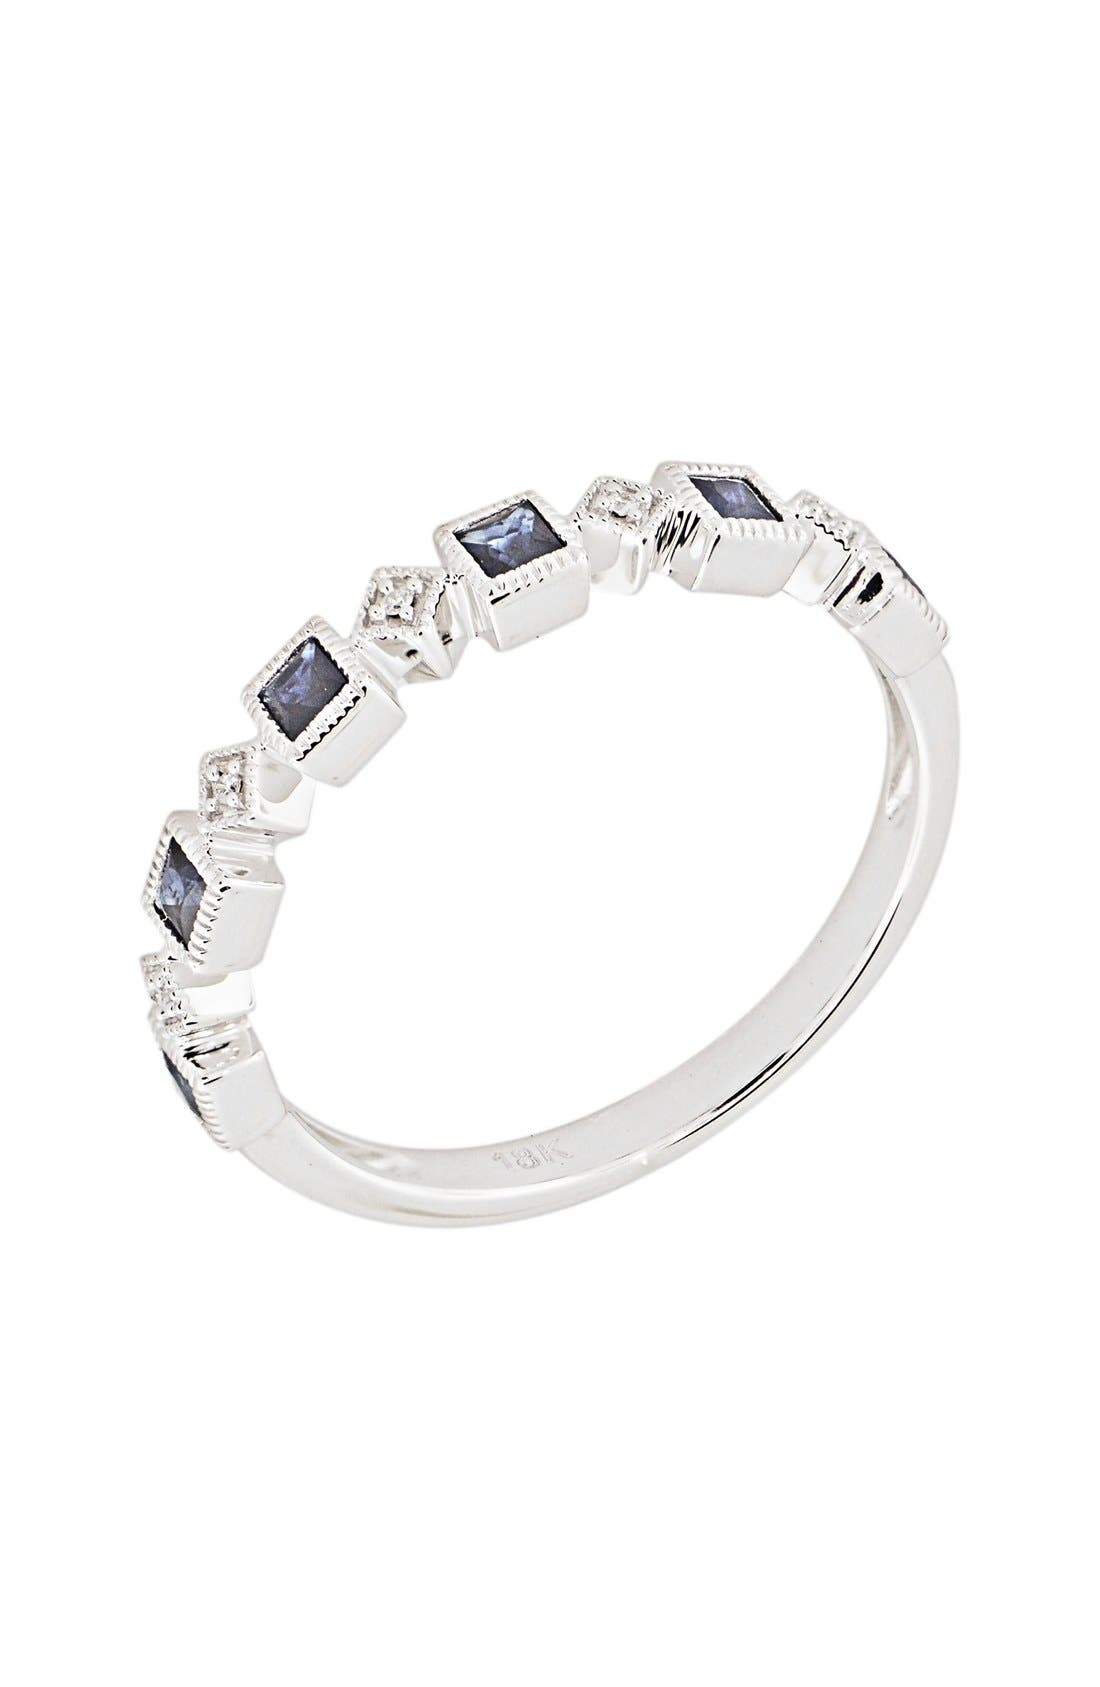 Main Image - Bony Levy Stackable Diamond & Sapphire Band Ring (Nordstrom Exclusive)